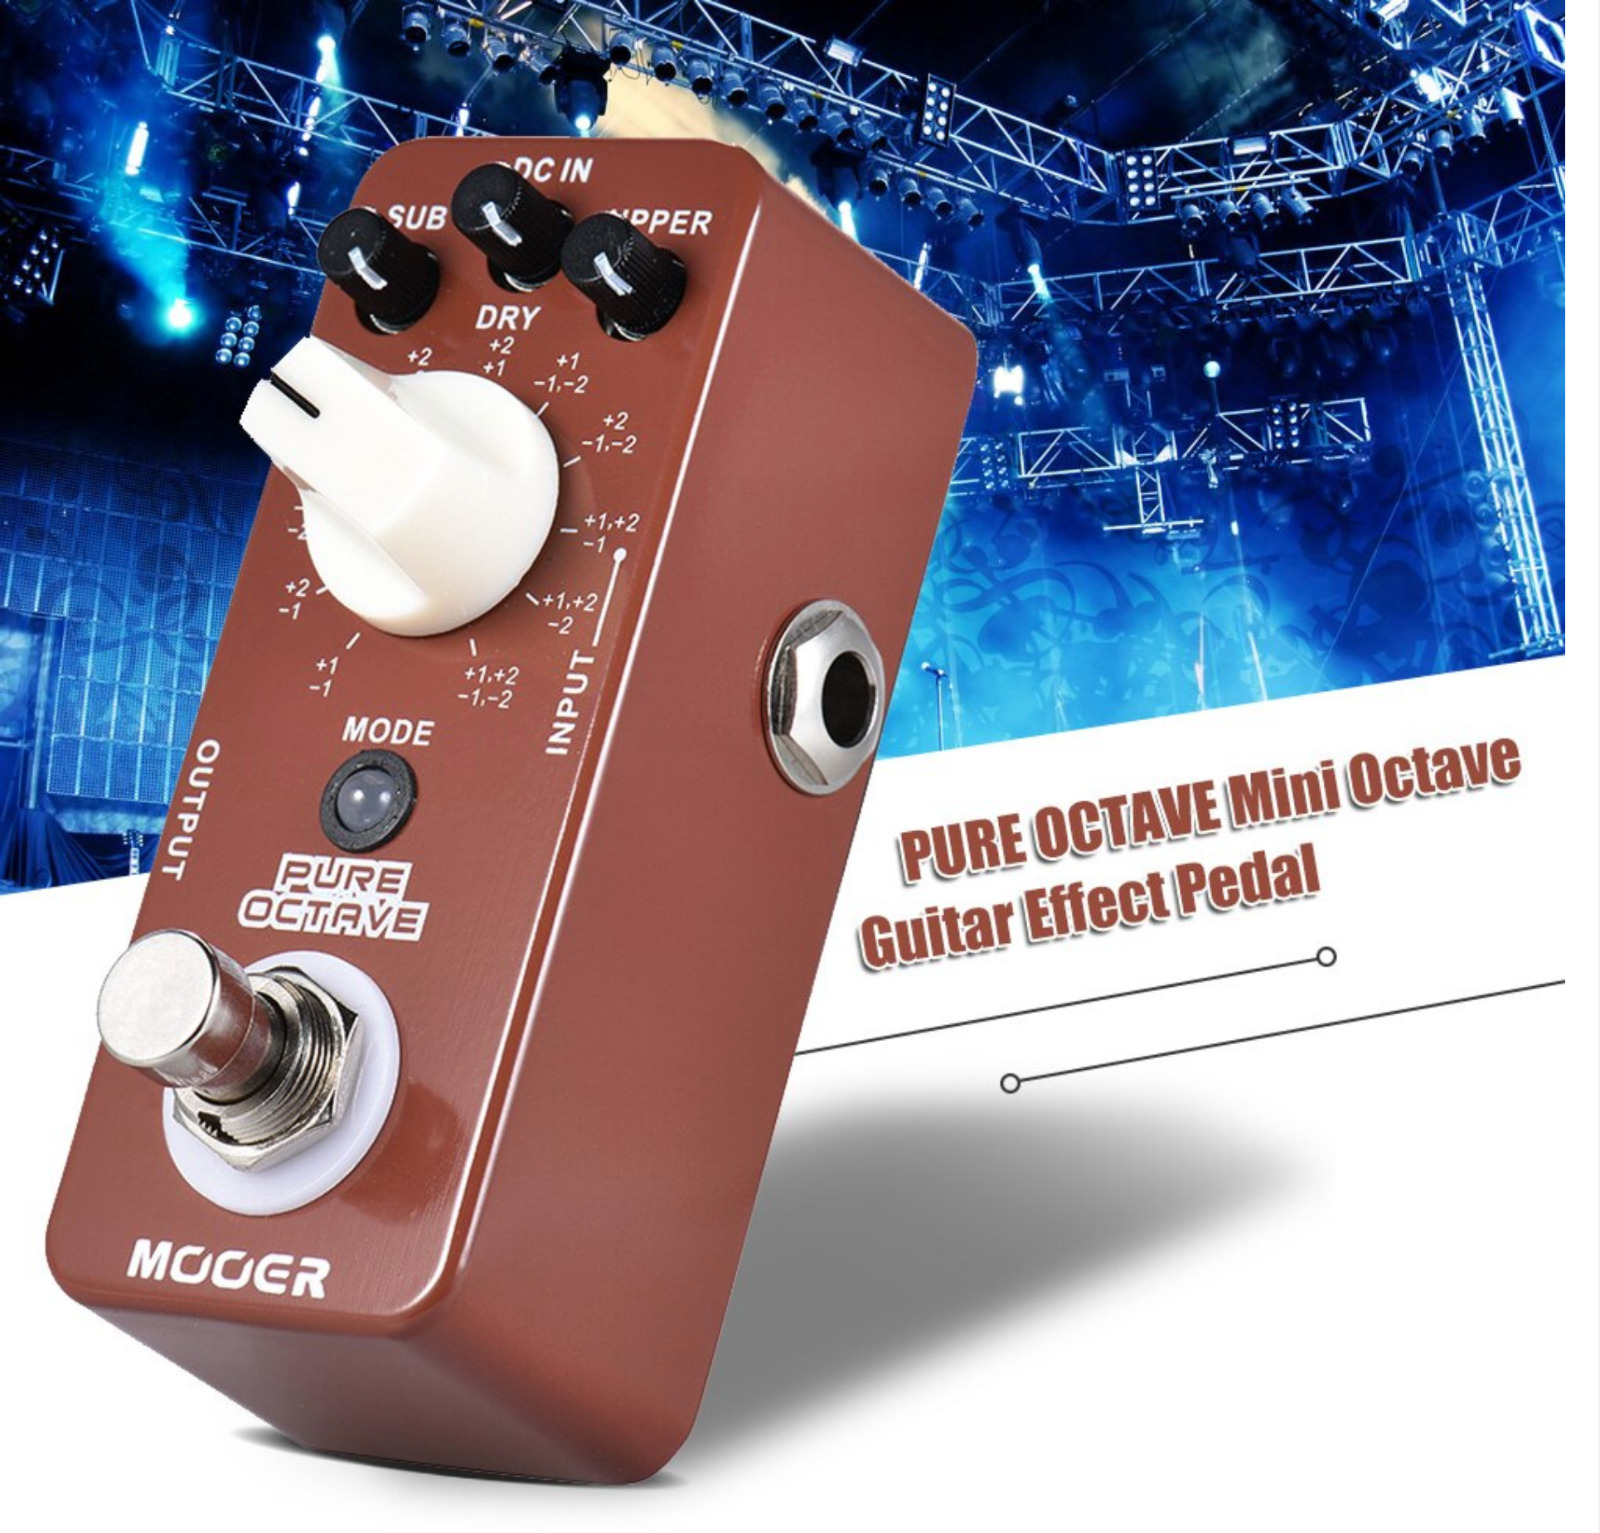 MOOER PURE OCTAVE Mini Octave Guitar Effect Pedal 11 Octave Modes True Bypass